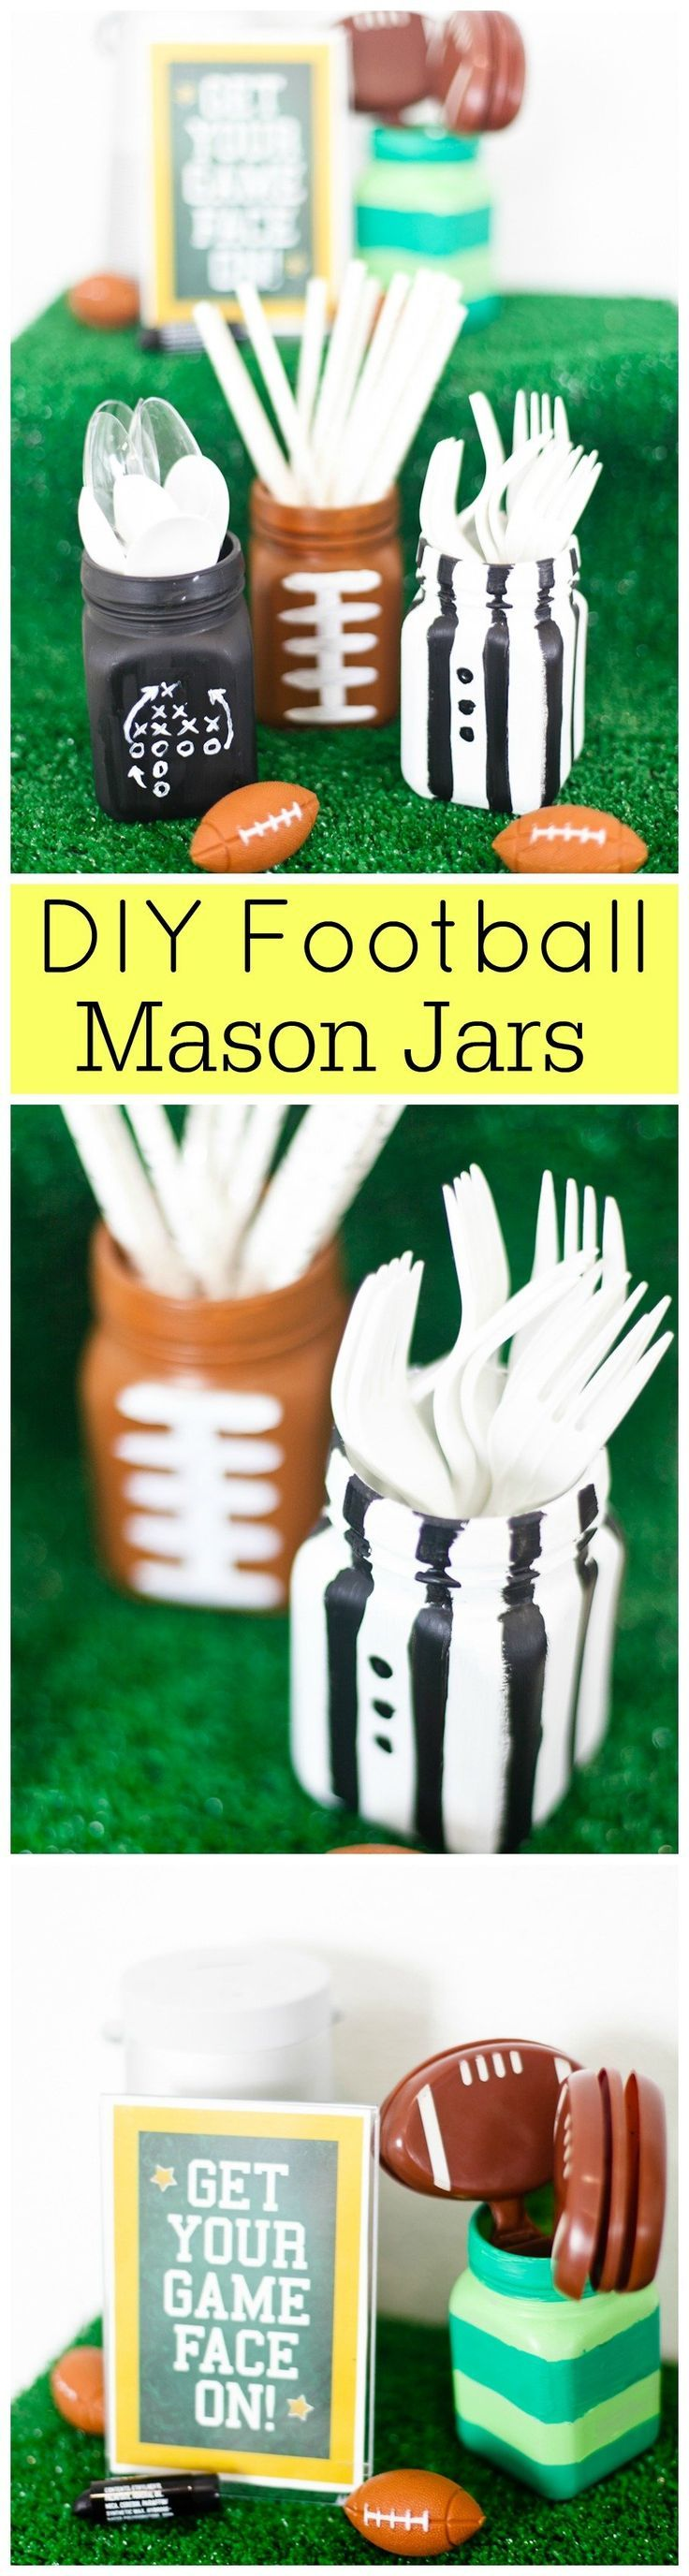 Gearing up for football season? These DIY Mason Jars are the perfect touch to your football-themed party!